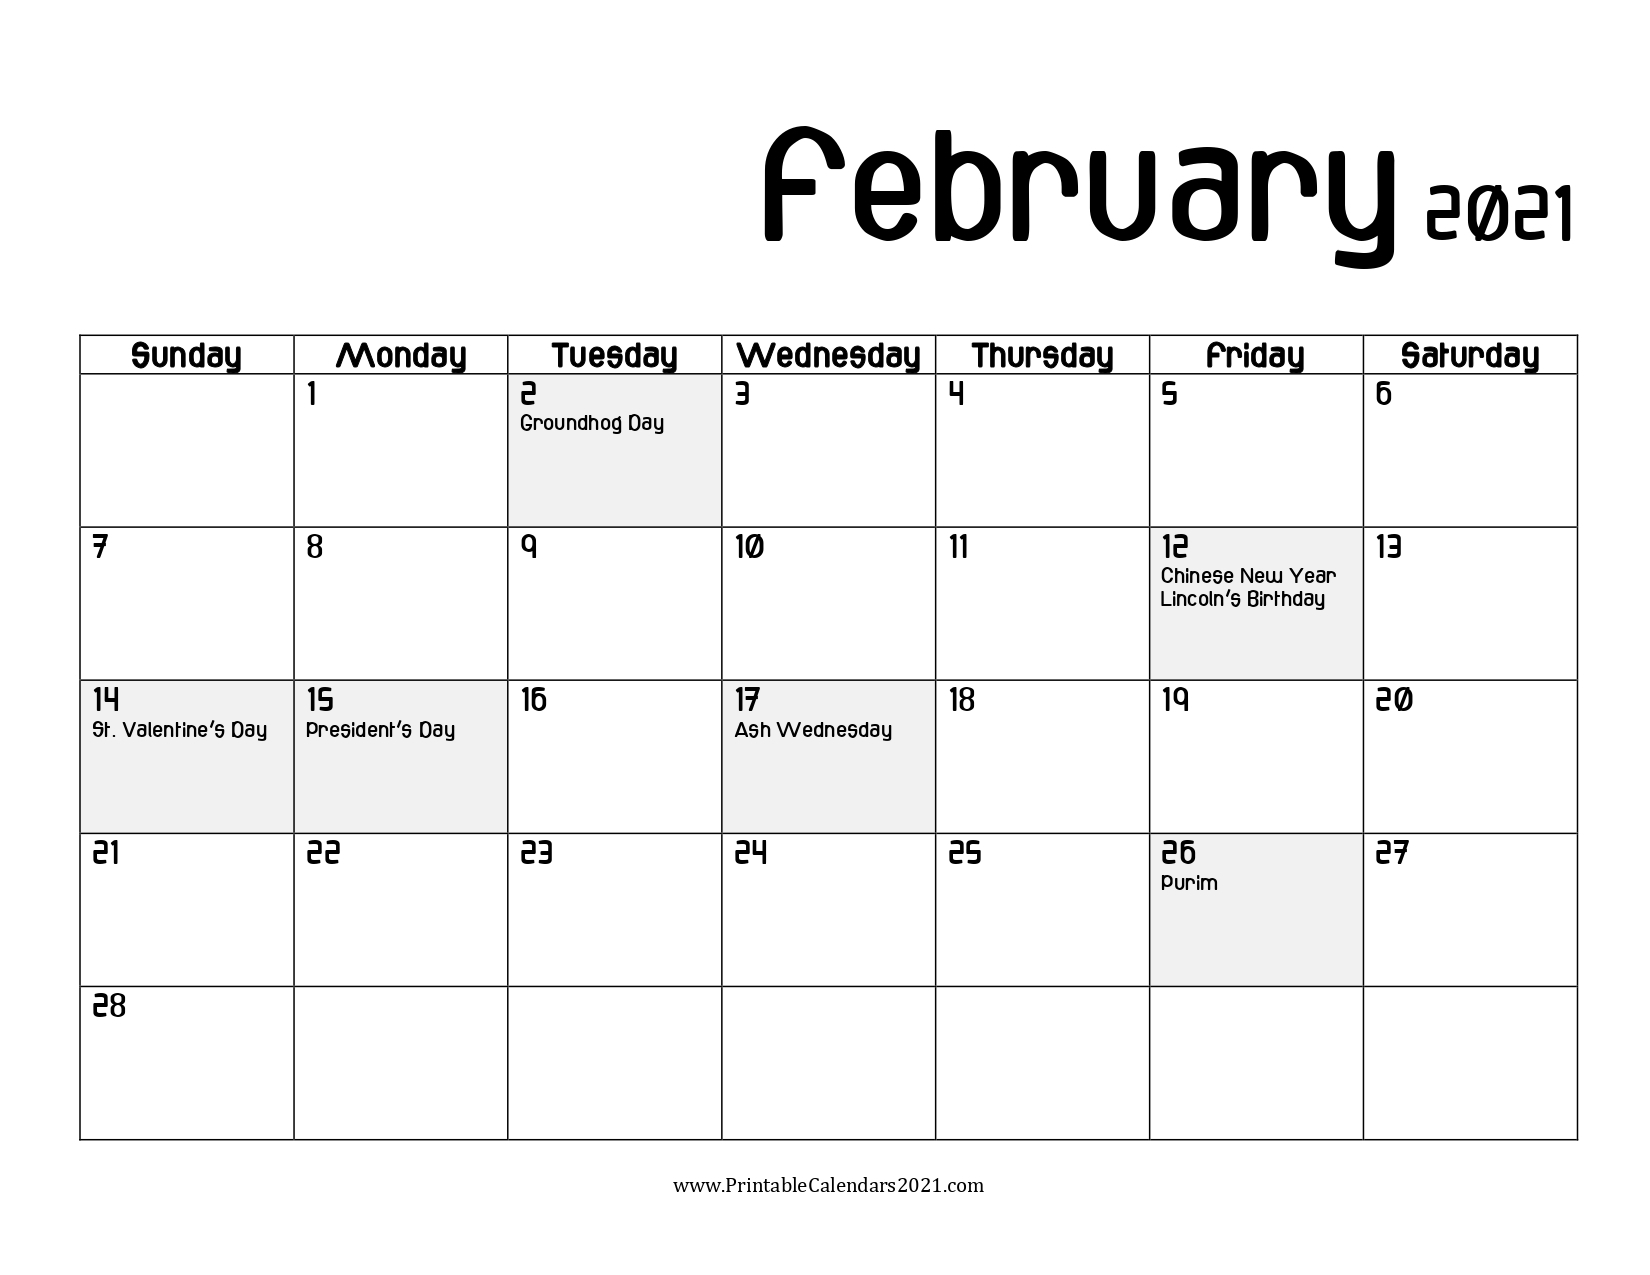 65+ Free February 2021 Calendar Printable With Holidays